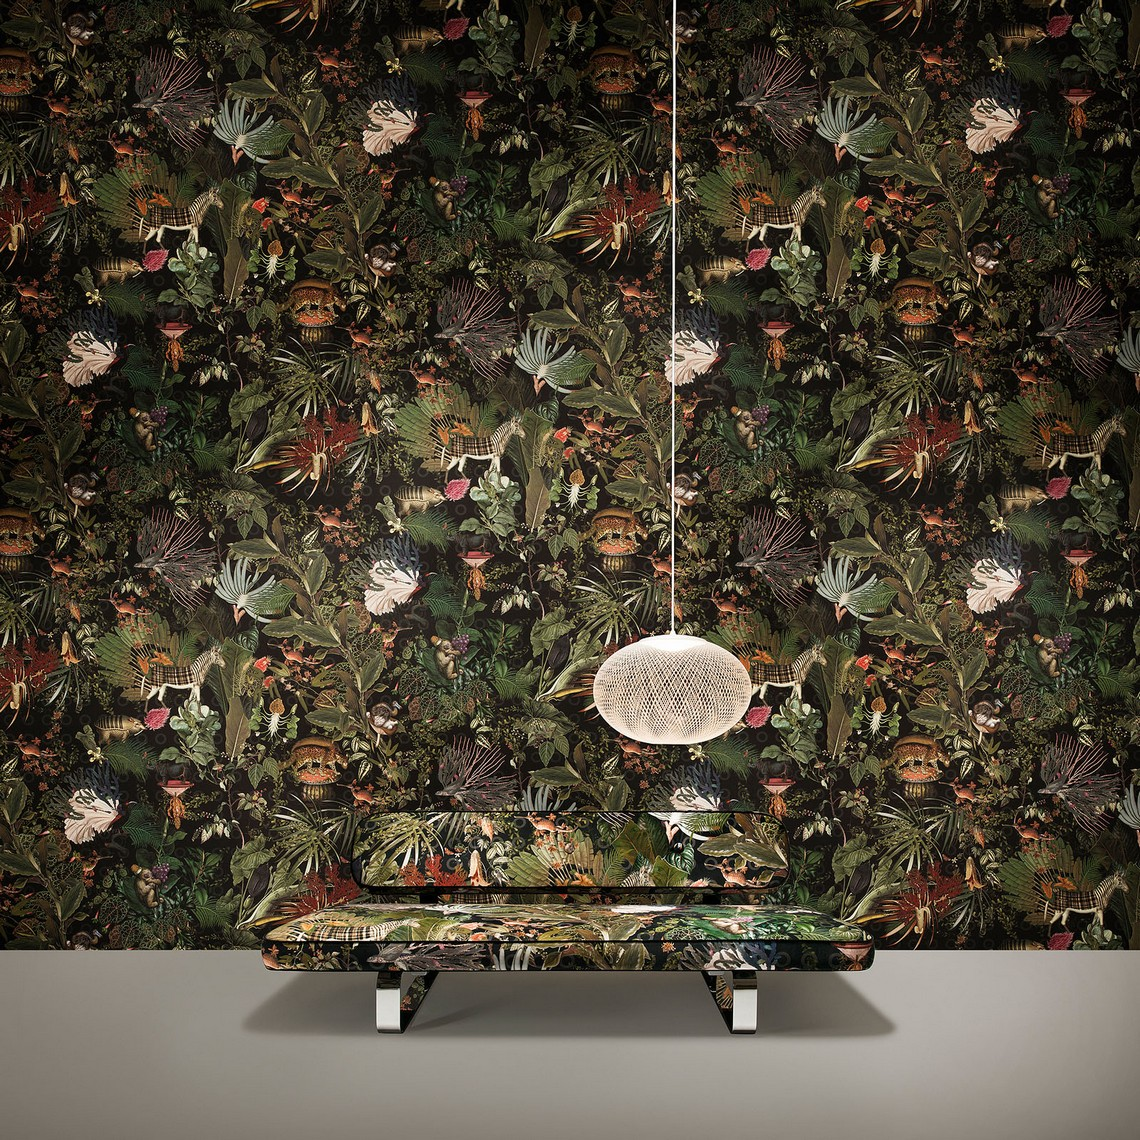 Autumn Design Trends For Inspiring Fresh Ambiances (Part III) autumn design trends Autumn Design Trends For Inspiring Fresh Ambiances (Part III) wallpapers everywhere Moooi